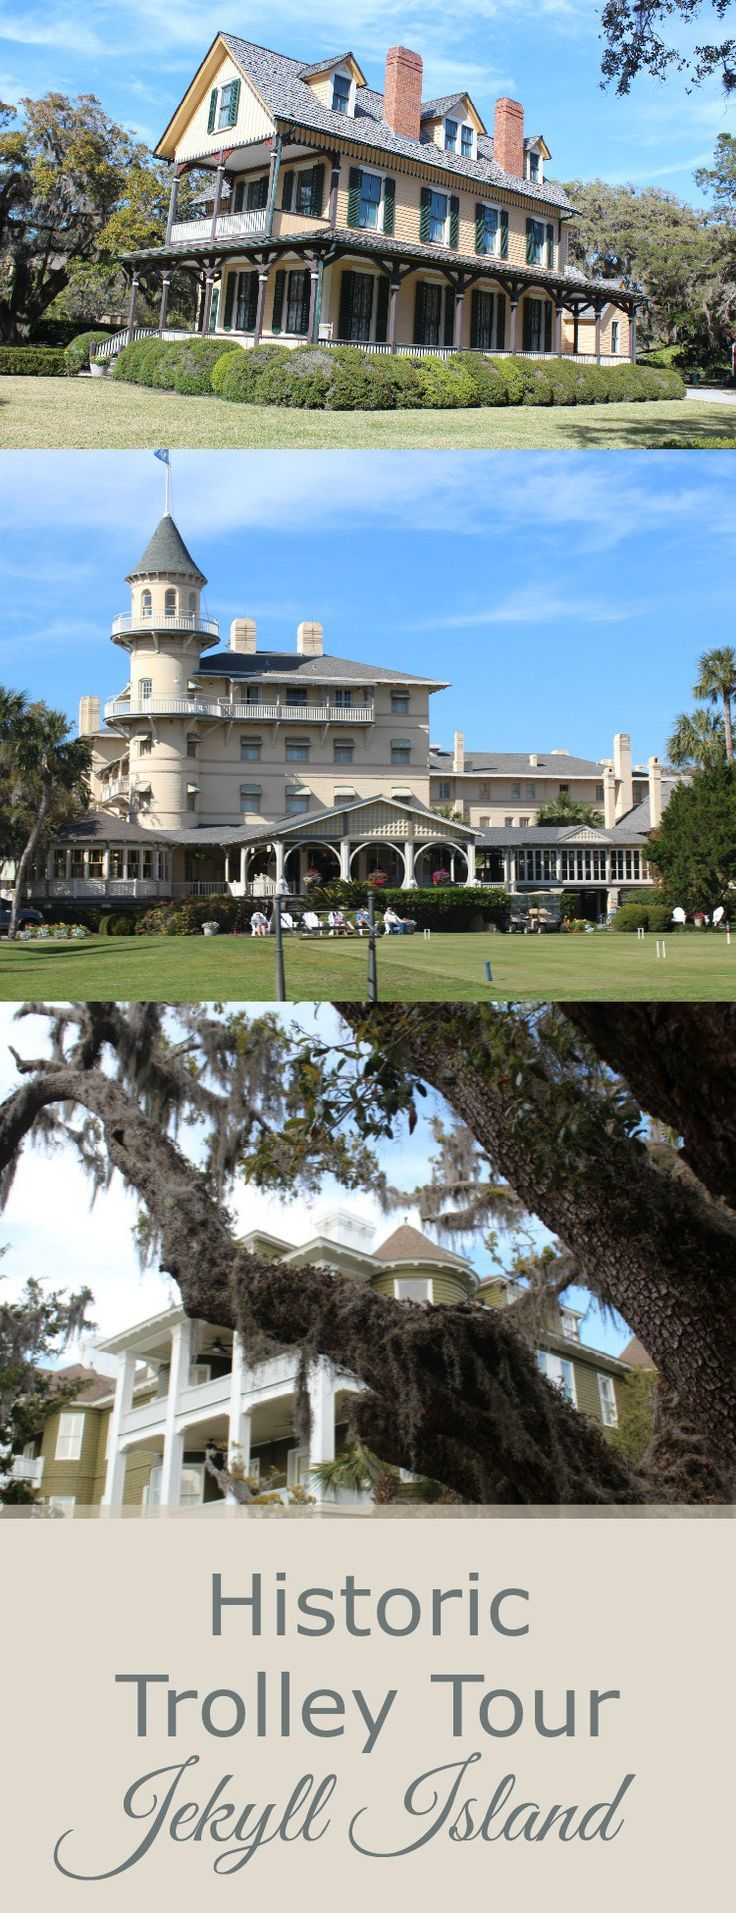 Jekyll Island Club tours: Once the playground of American tycoons, now a playground for all. So entertaining!